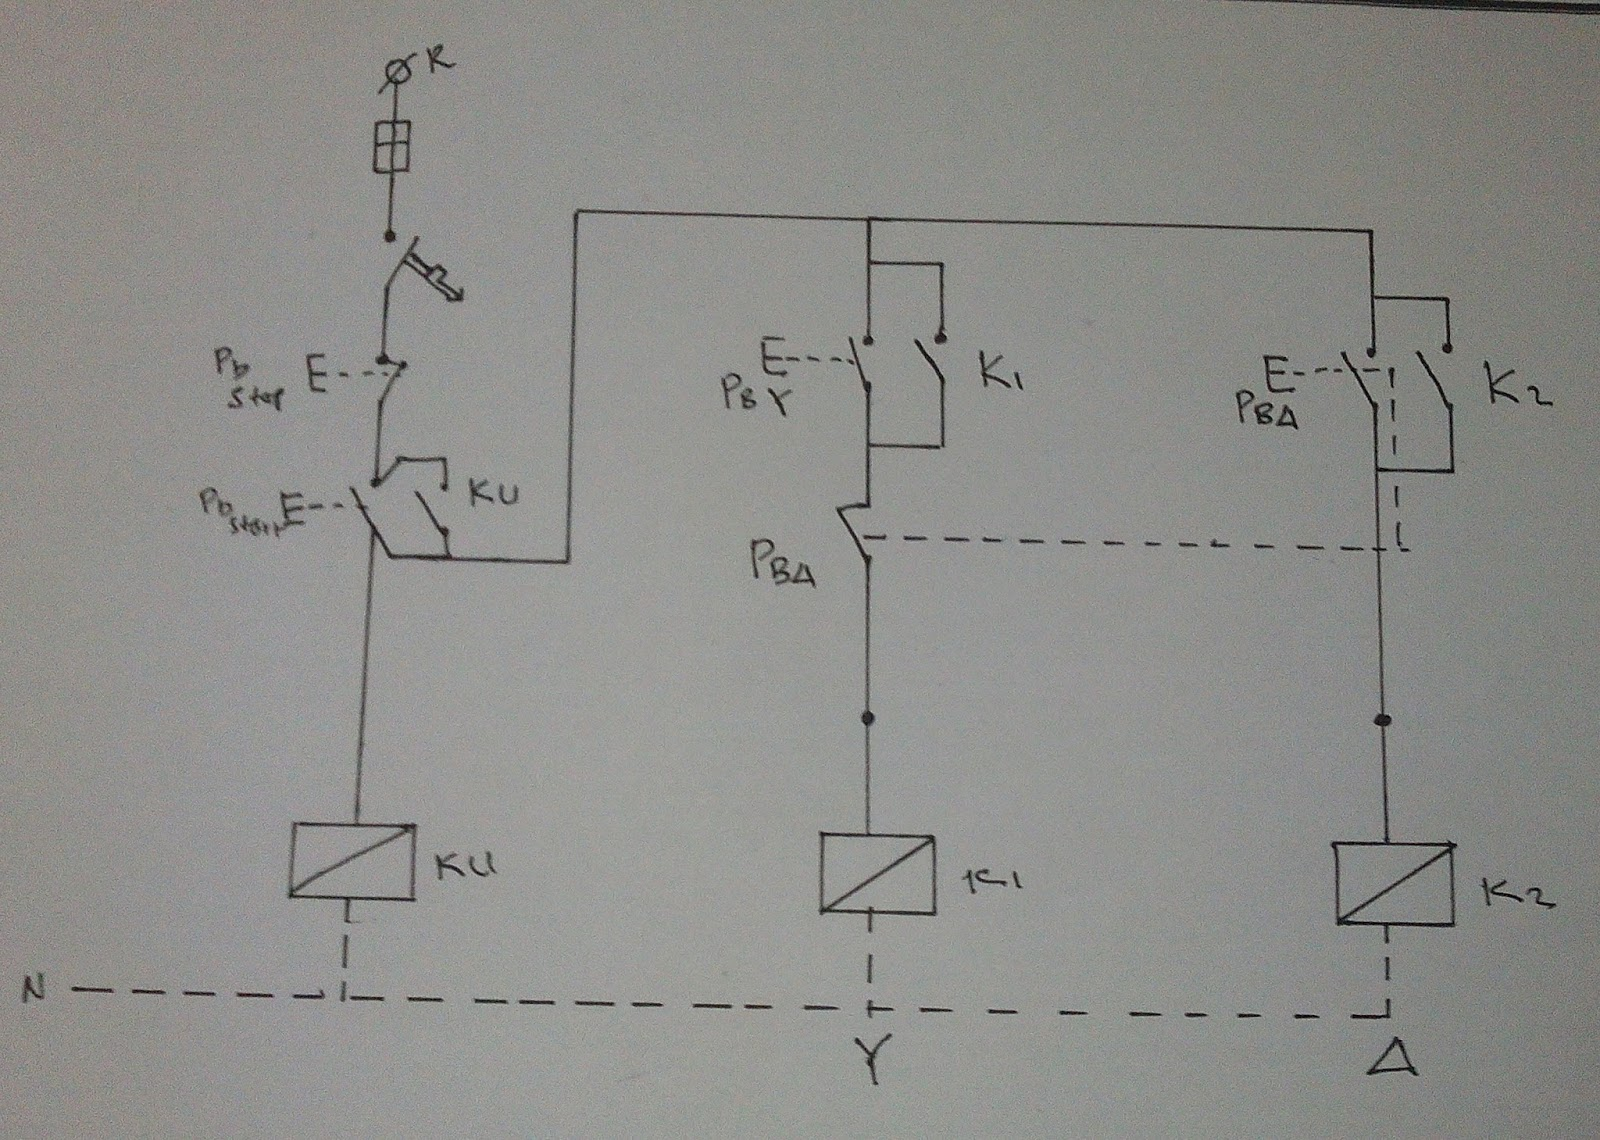 Starter Wiring Connection Diagram Library Single Phase Motor Reversing Star Delta In 3 Induction